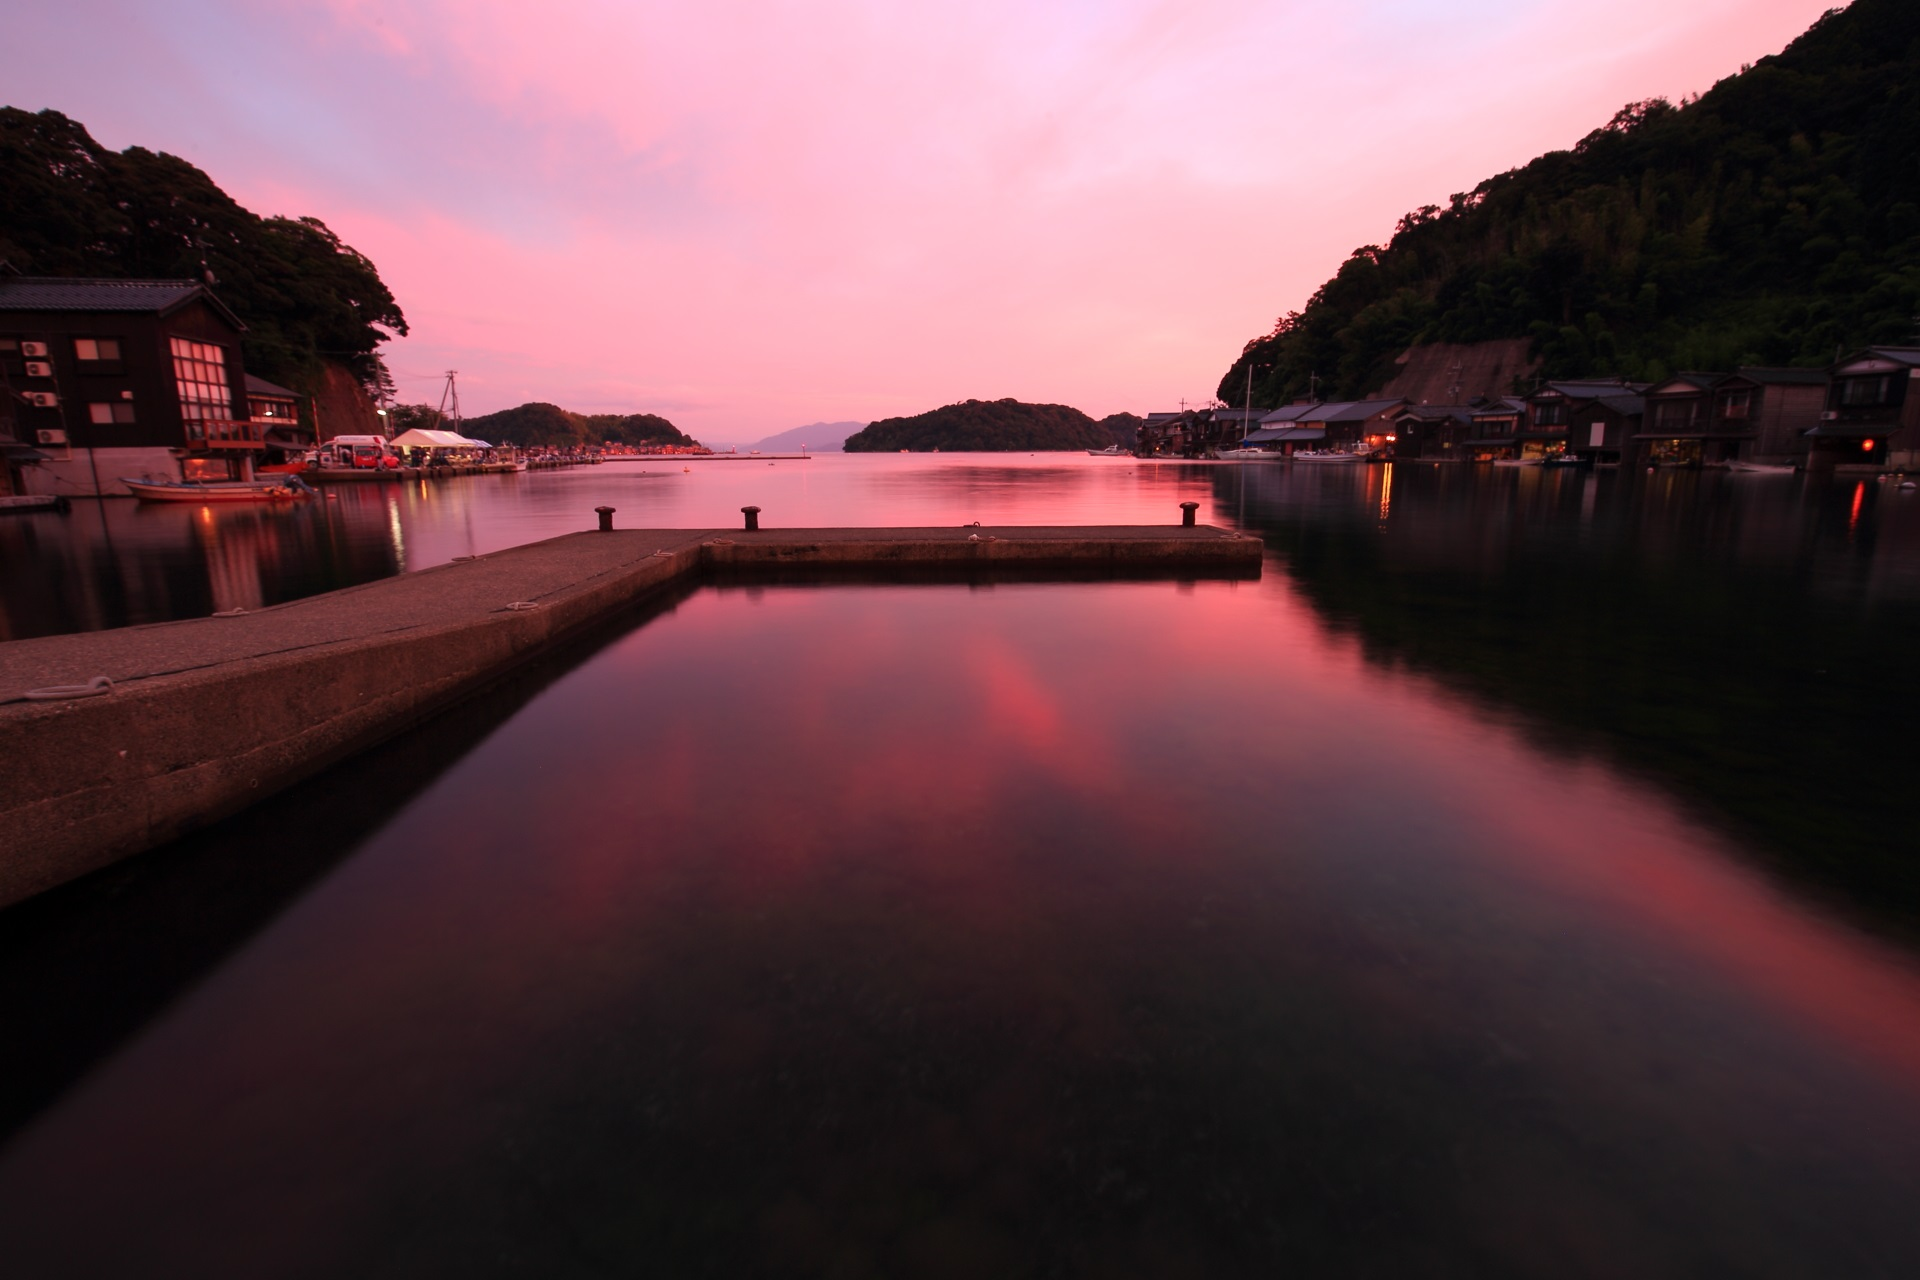 Fantastic sunset of Ine-Wan Bay, Kyoto